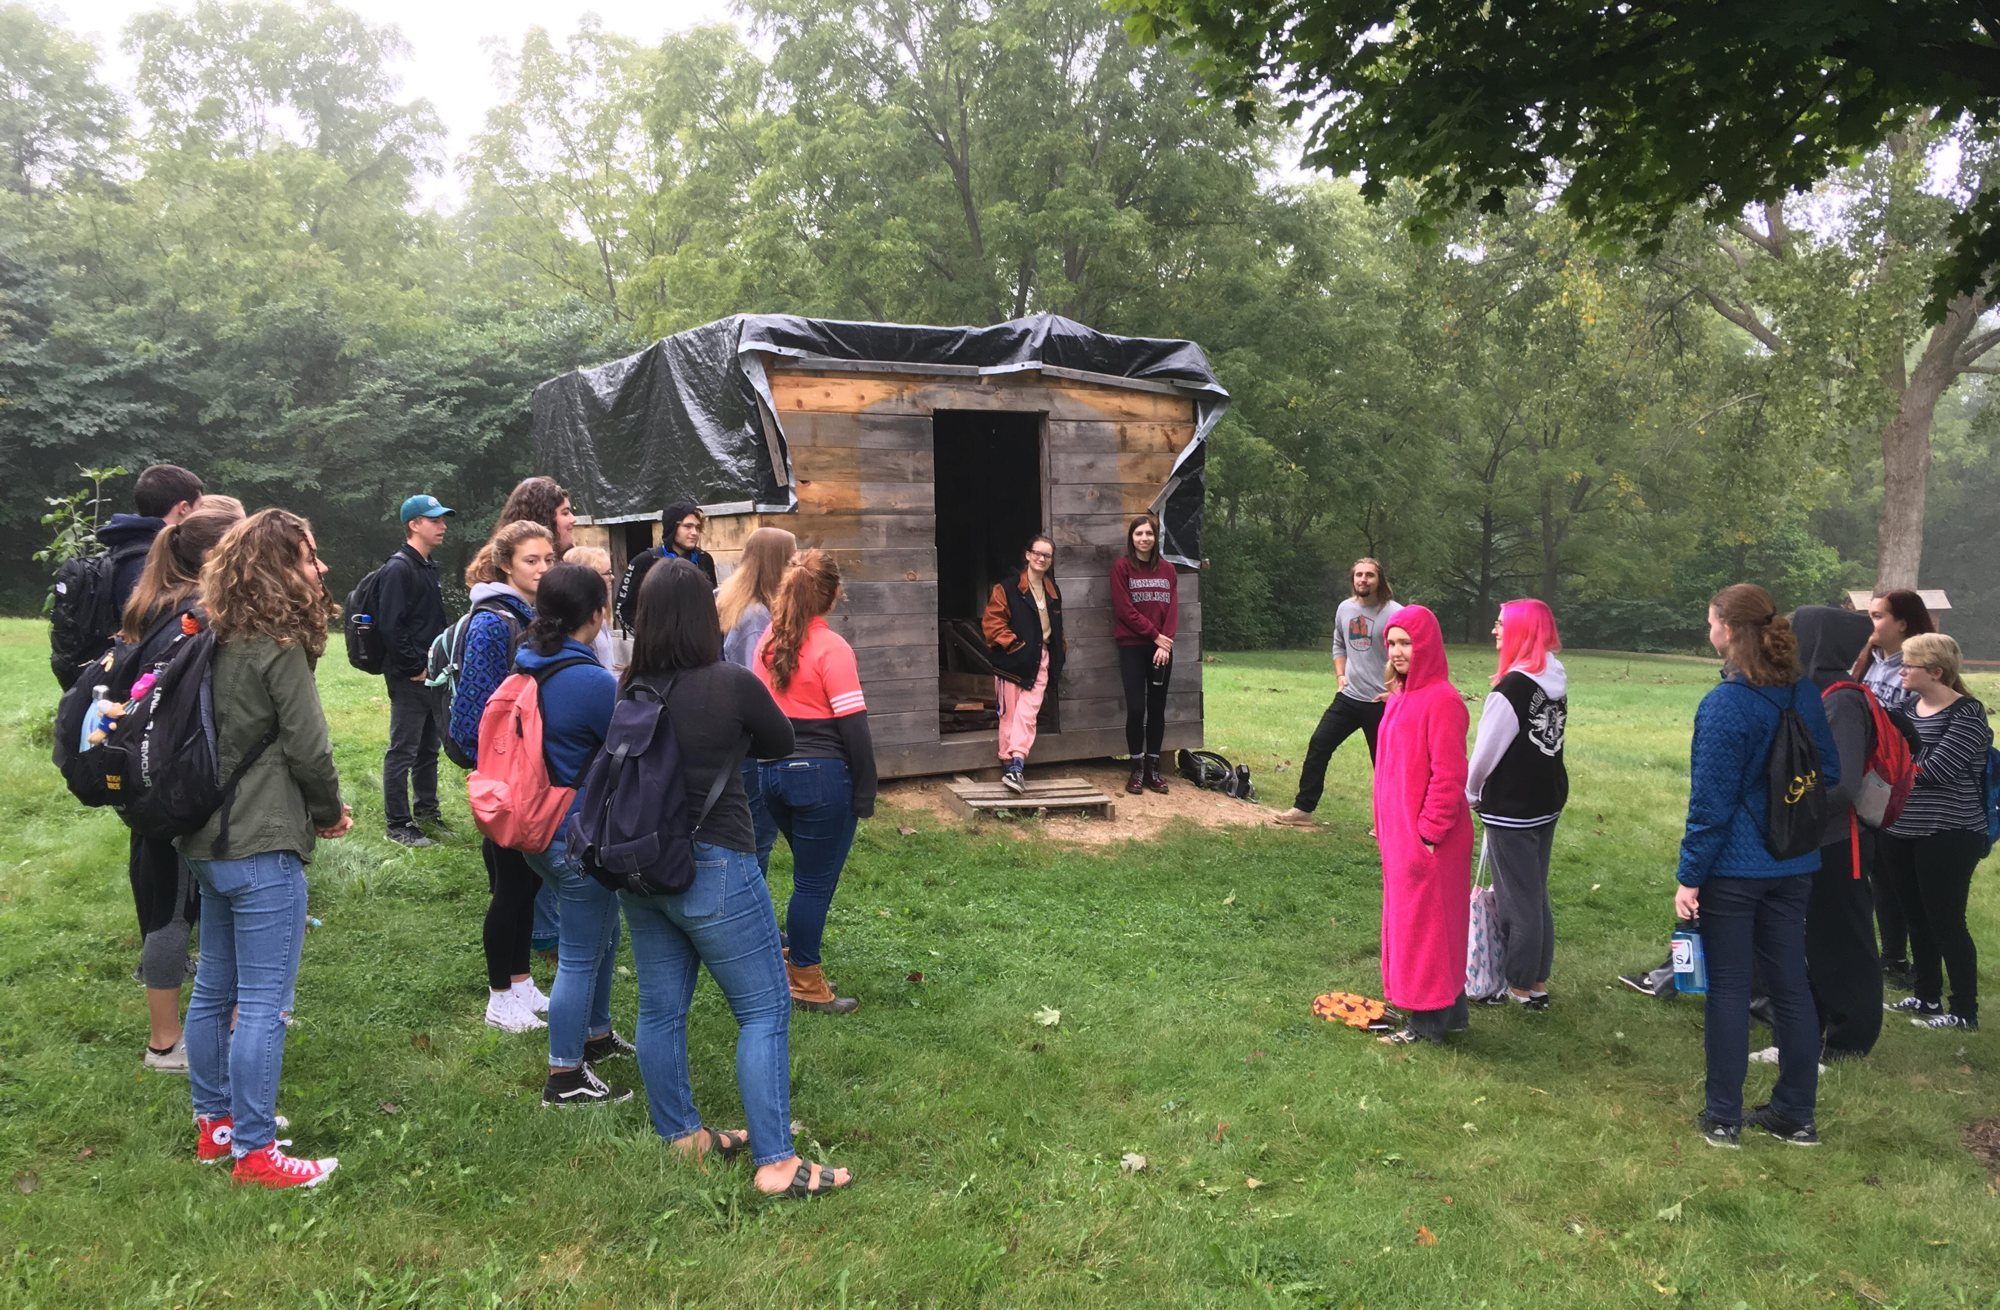 Replica of Henry David Thoreau's cabin being constructed by students of Prof. Edward Gillin at SUNY Geneseo